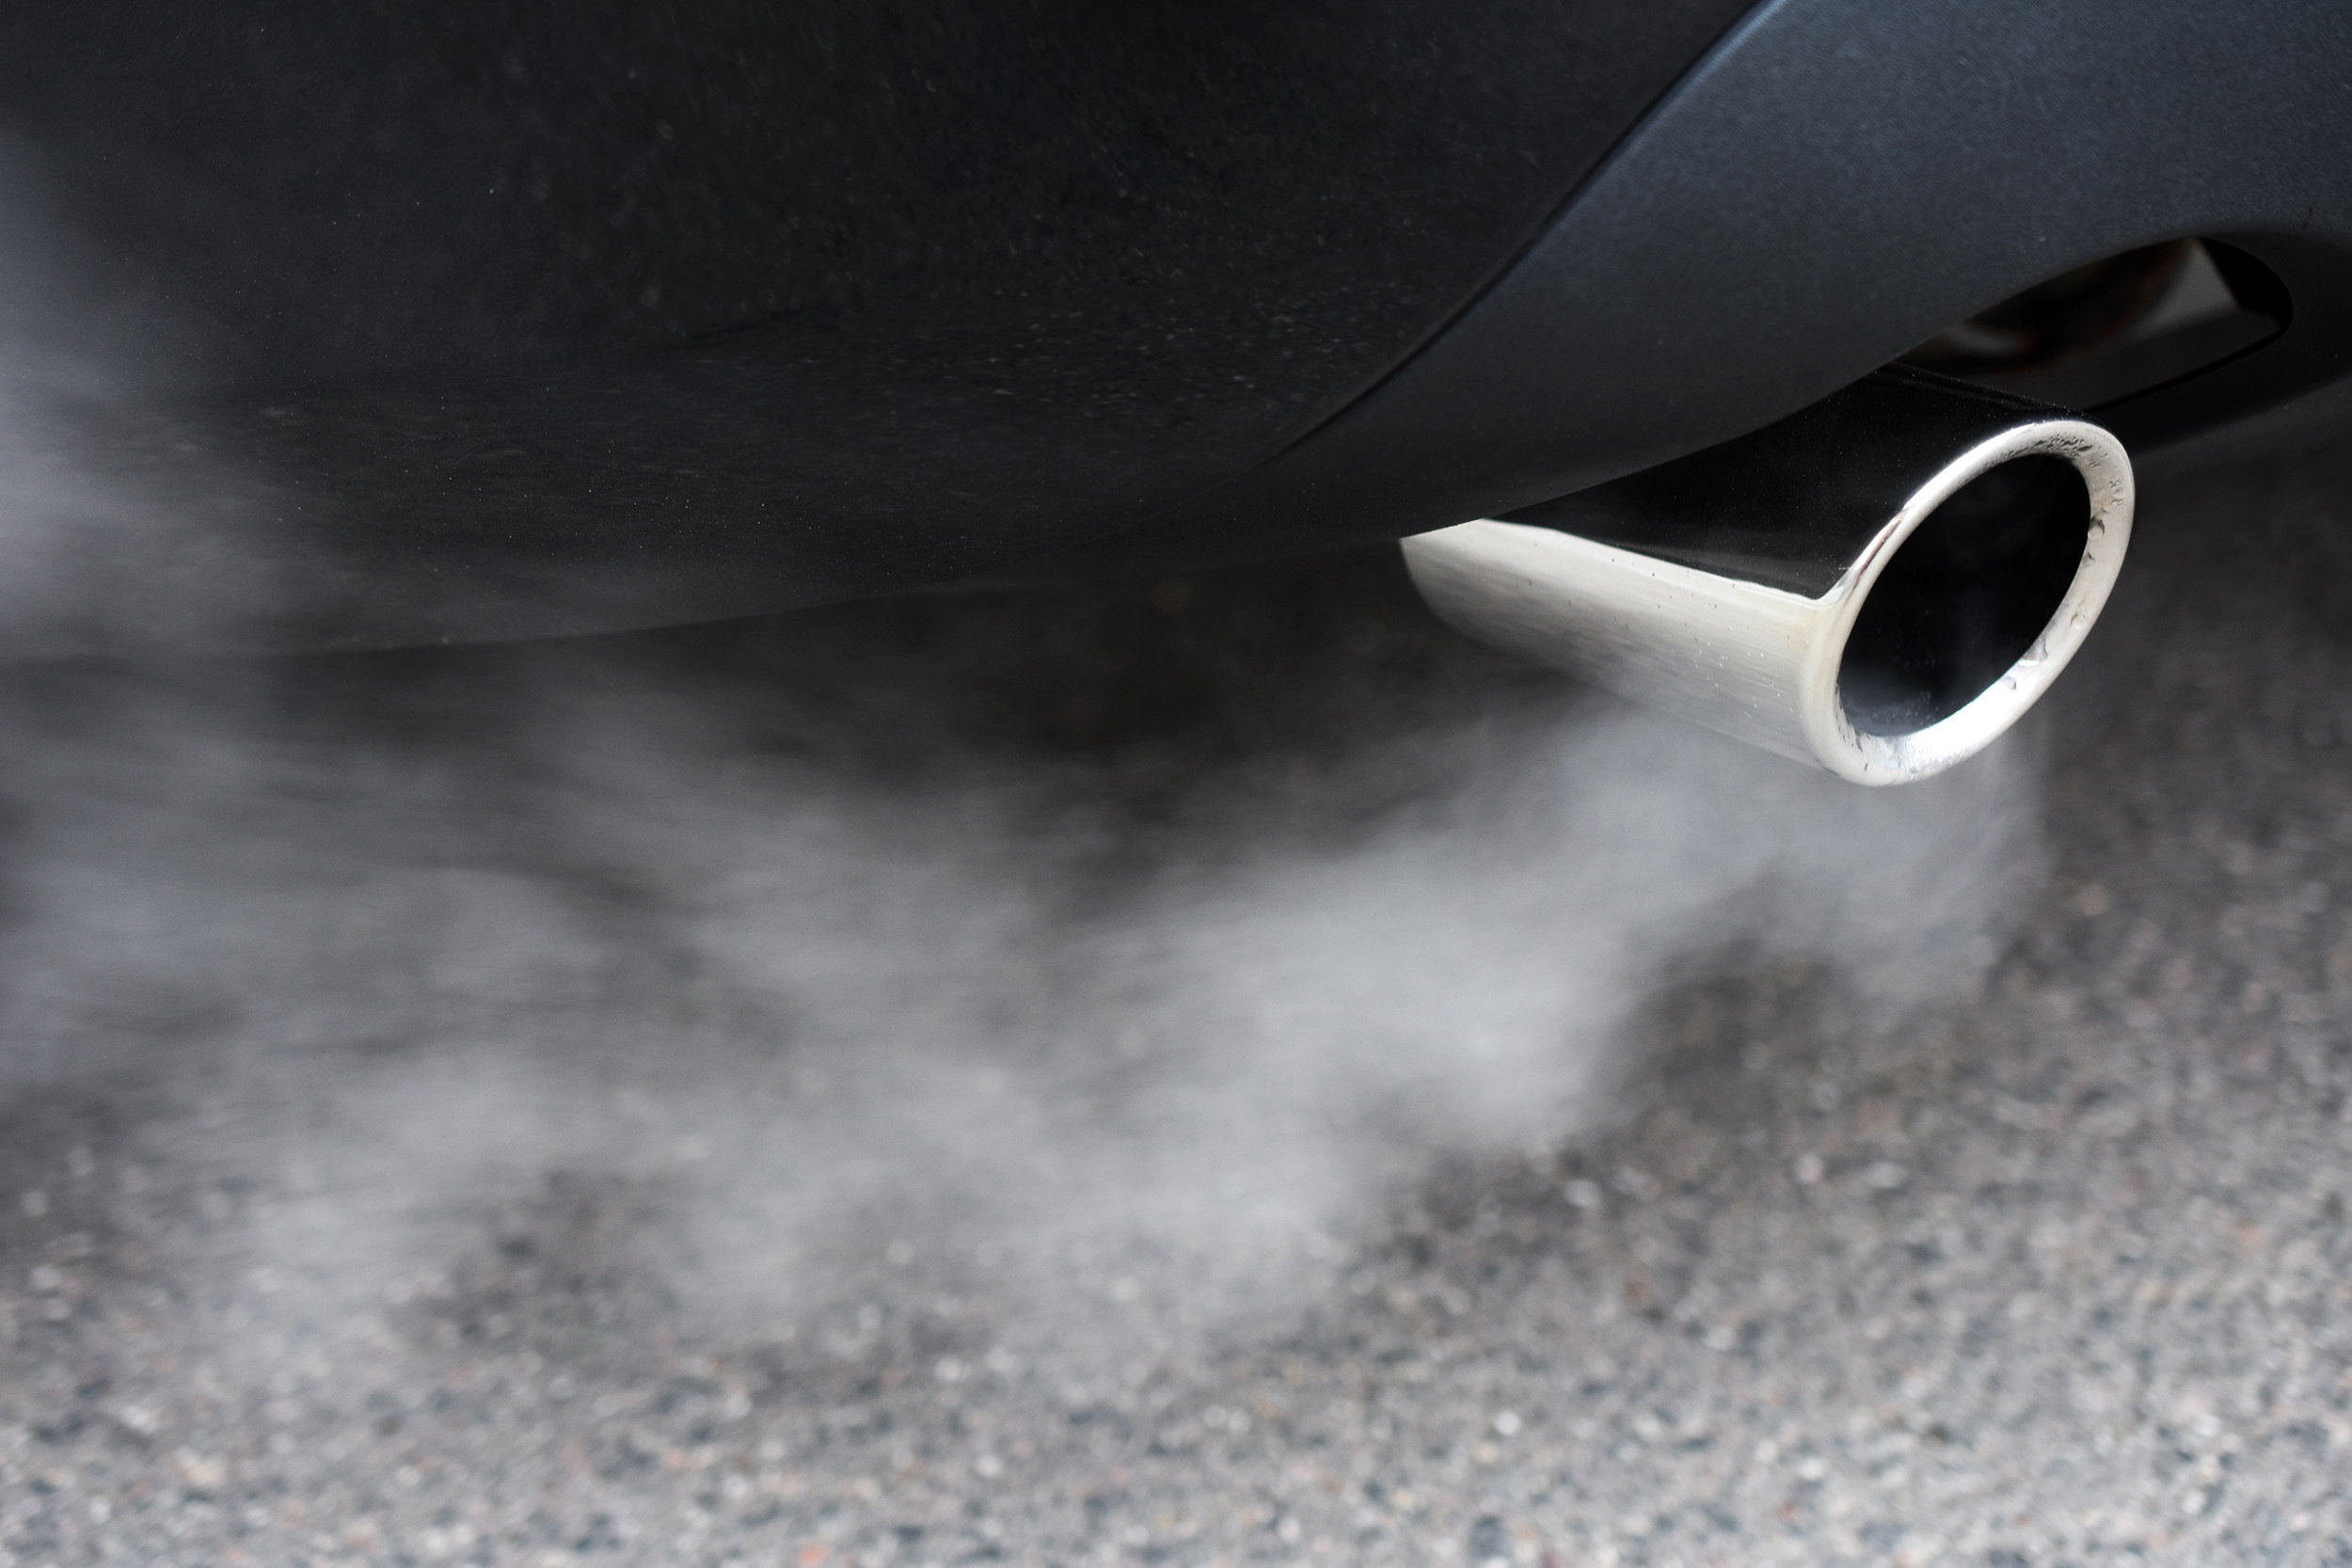 EXHAUST SERVICE - Your vehicle's exhaust system impacts your fuel economy and the safety of your passengers.